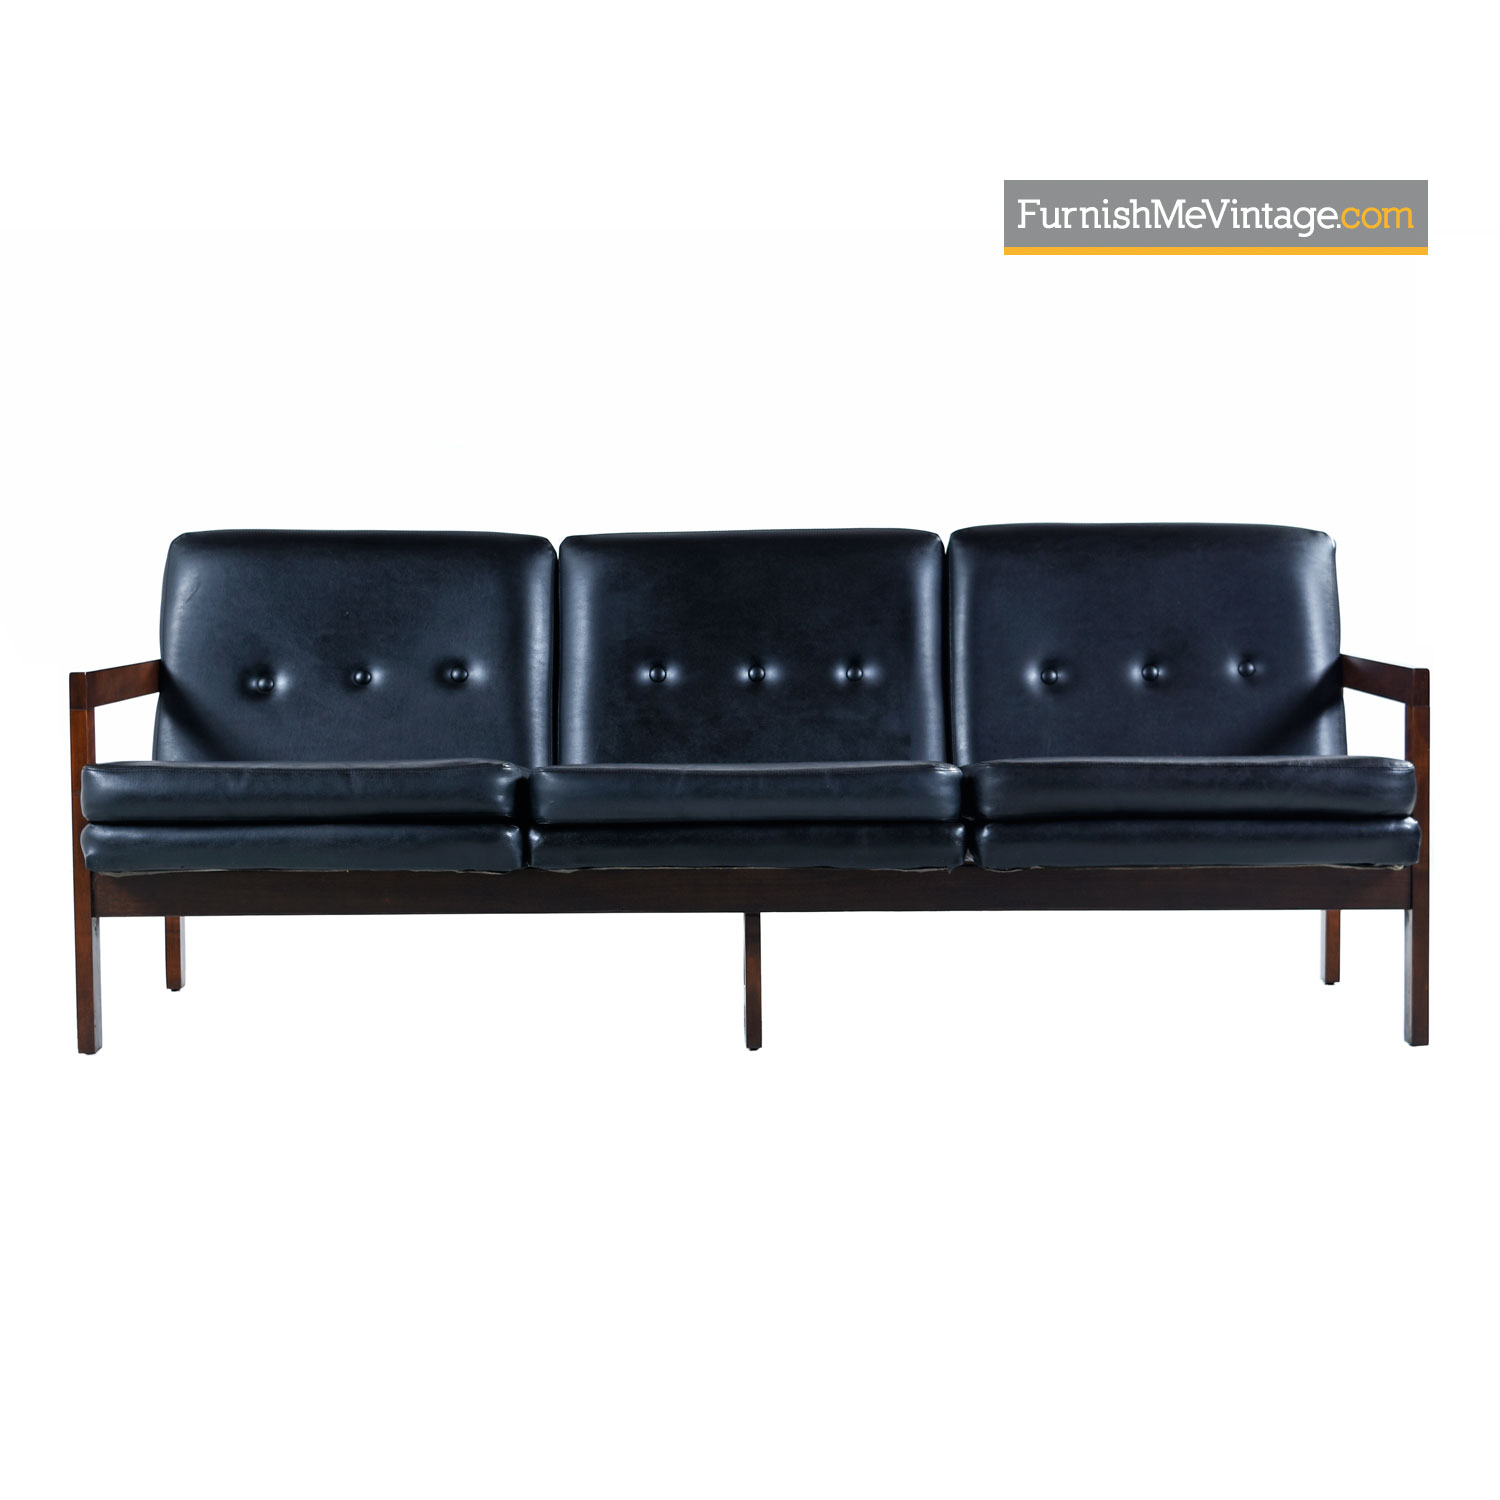 Leather Sofa Couch With Button Tufted Backs - Mid-Century Modern